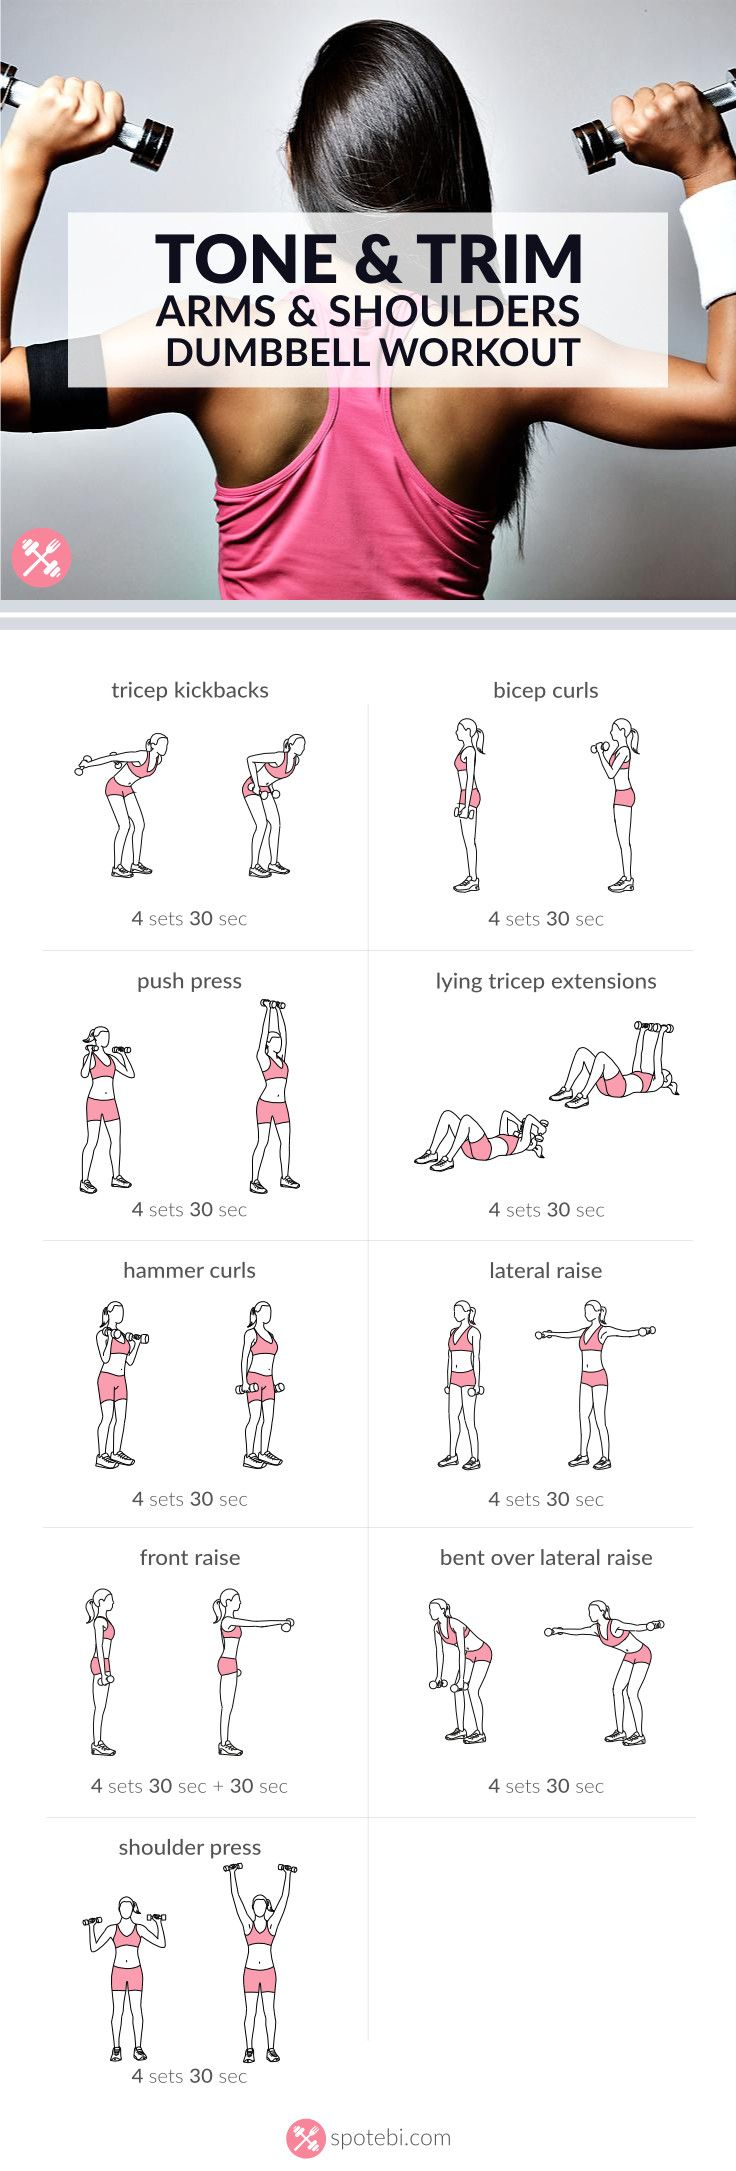 200 best Health/Fitness images on Pinterest | Healthy eating ...